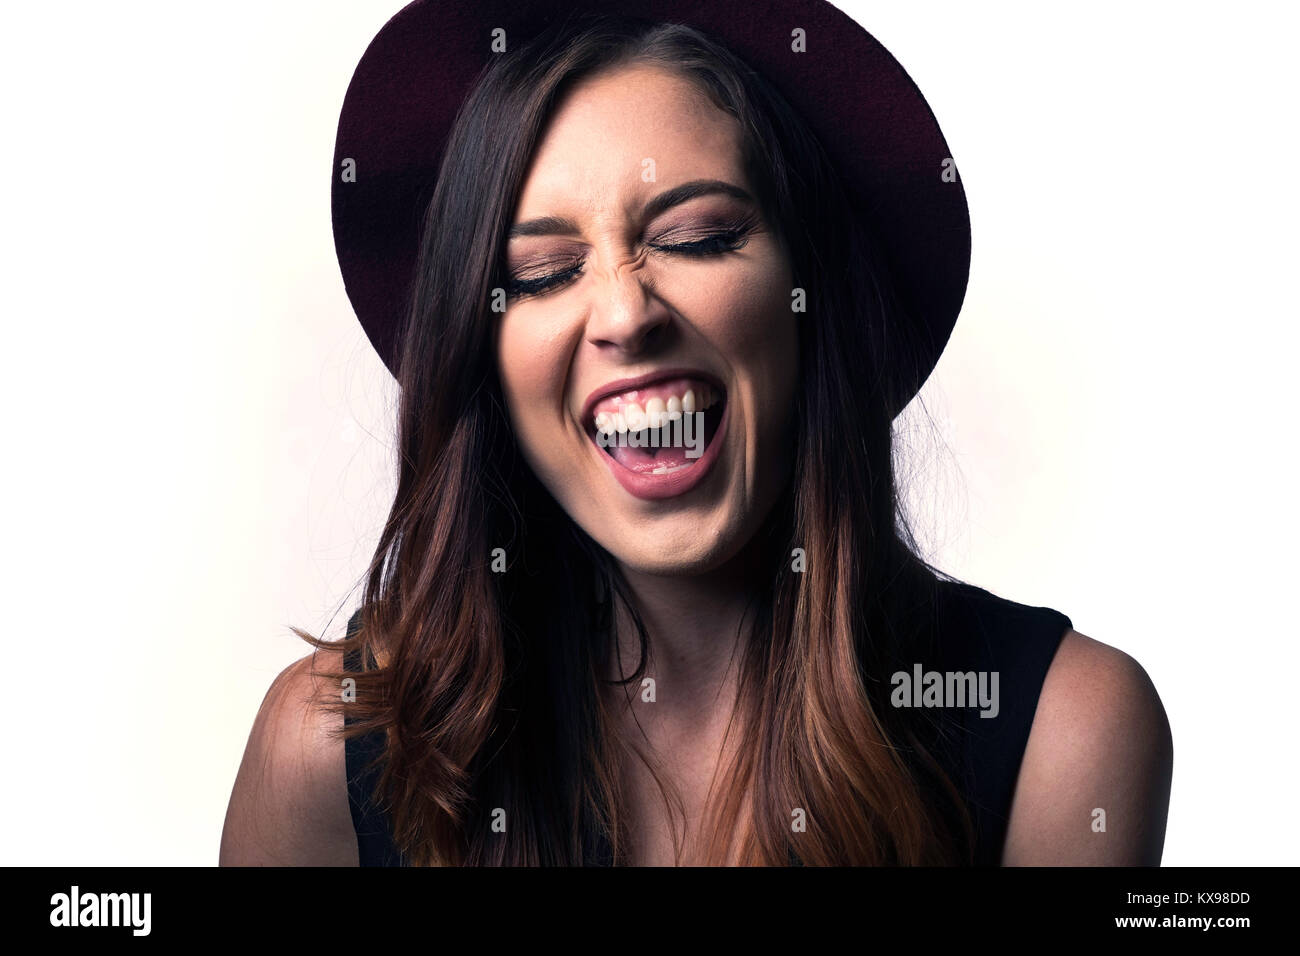 Young woman in hat laughing playing on white background Stock Photo